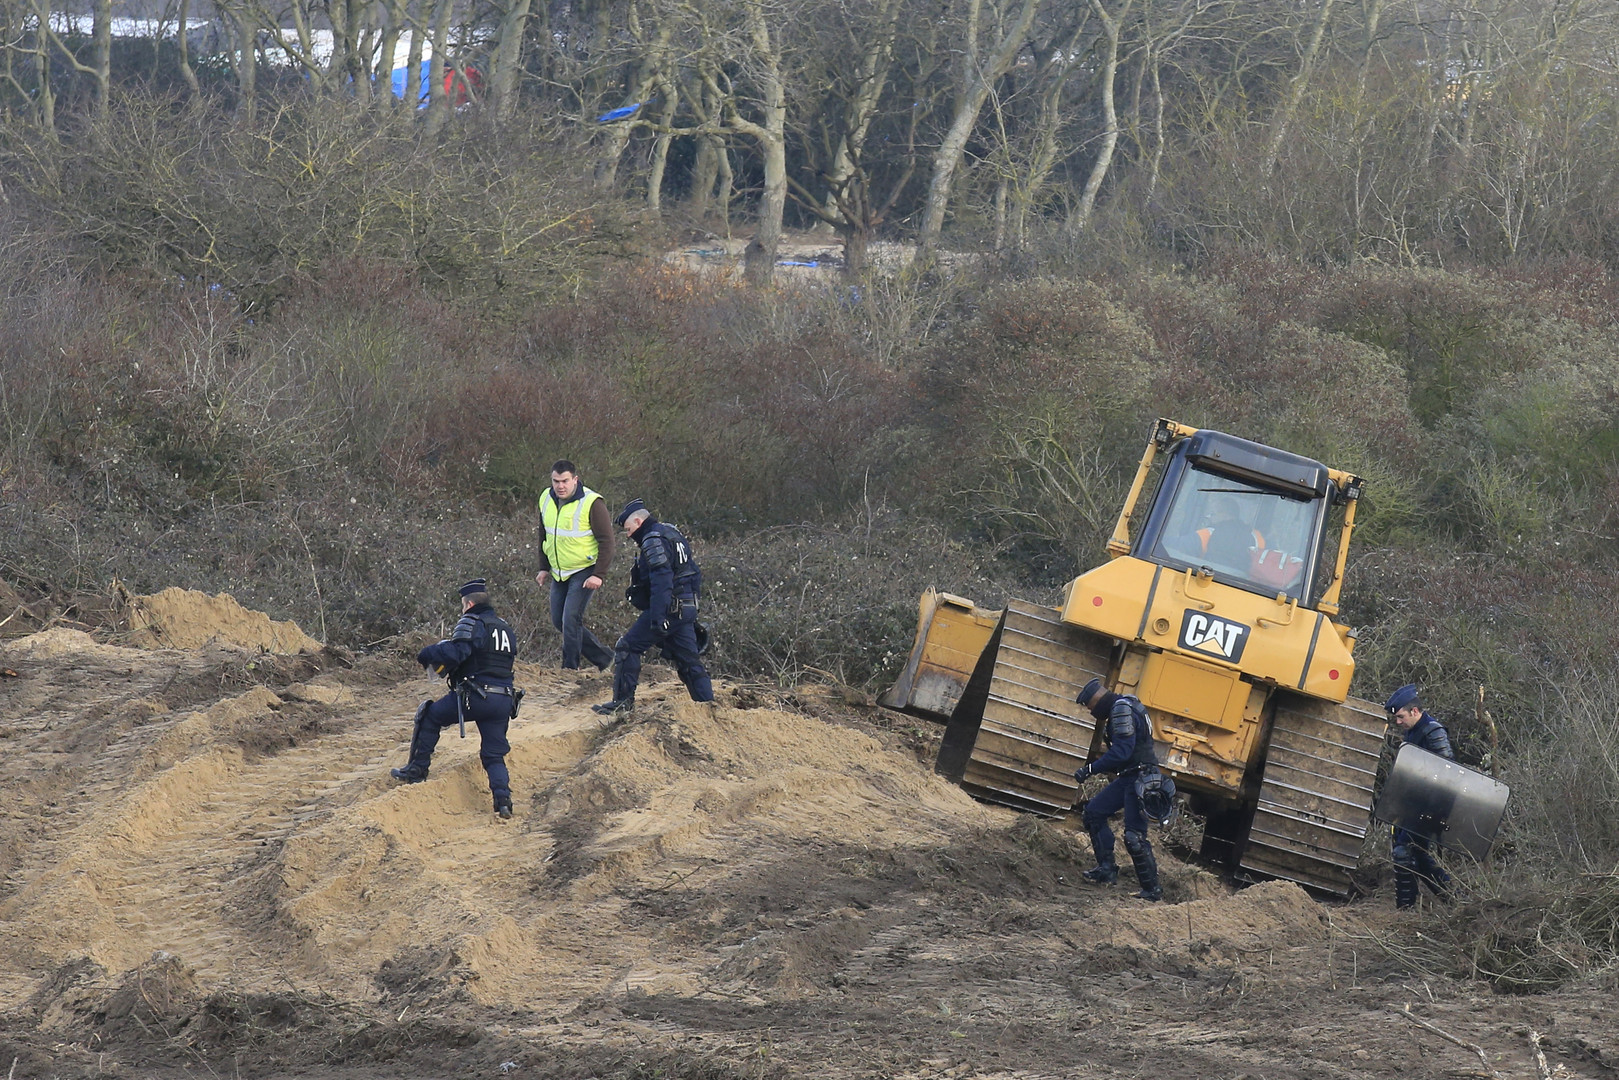 Les bulldozers ont commencé à défricher le camp de migrants de Calais (VIDEO)